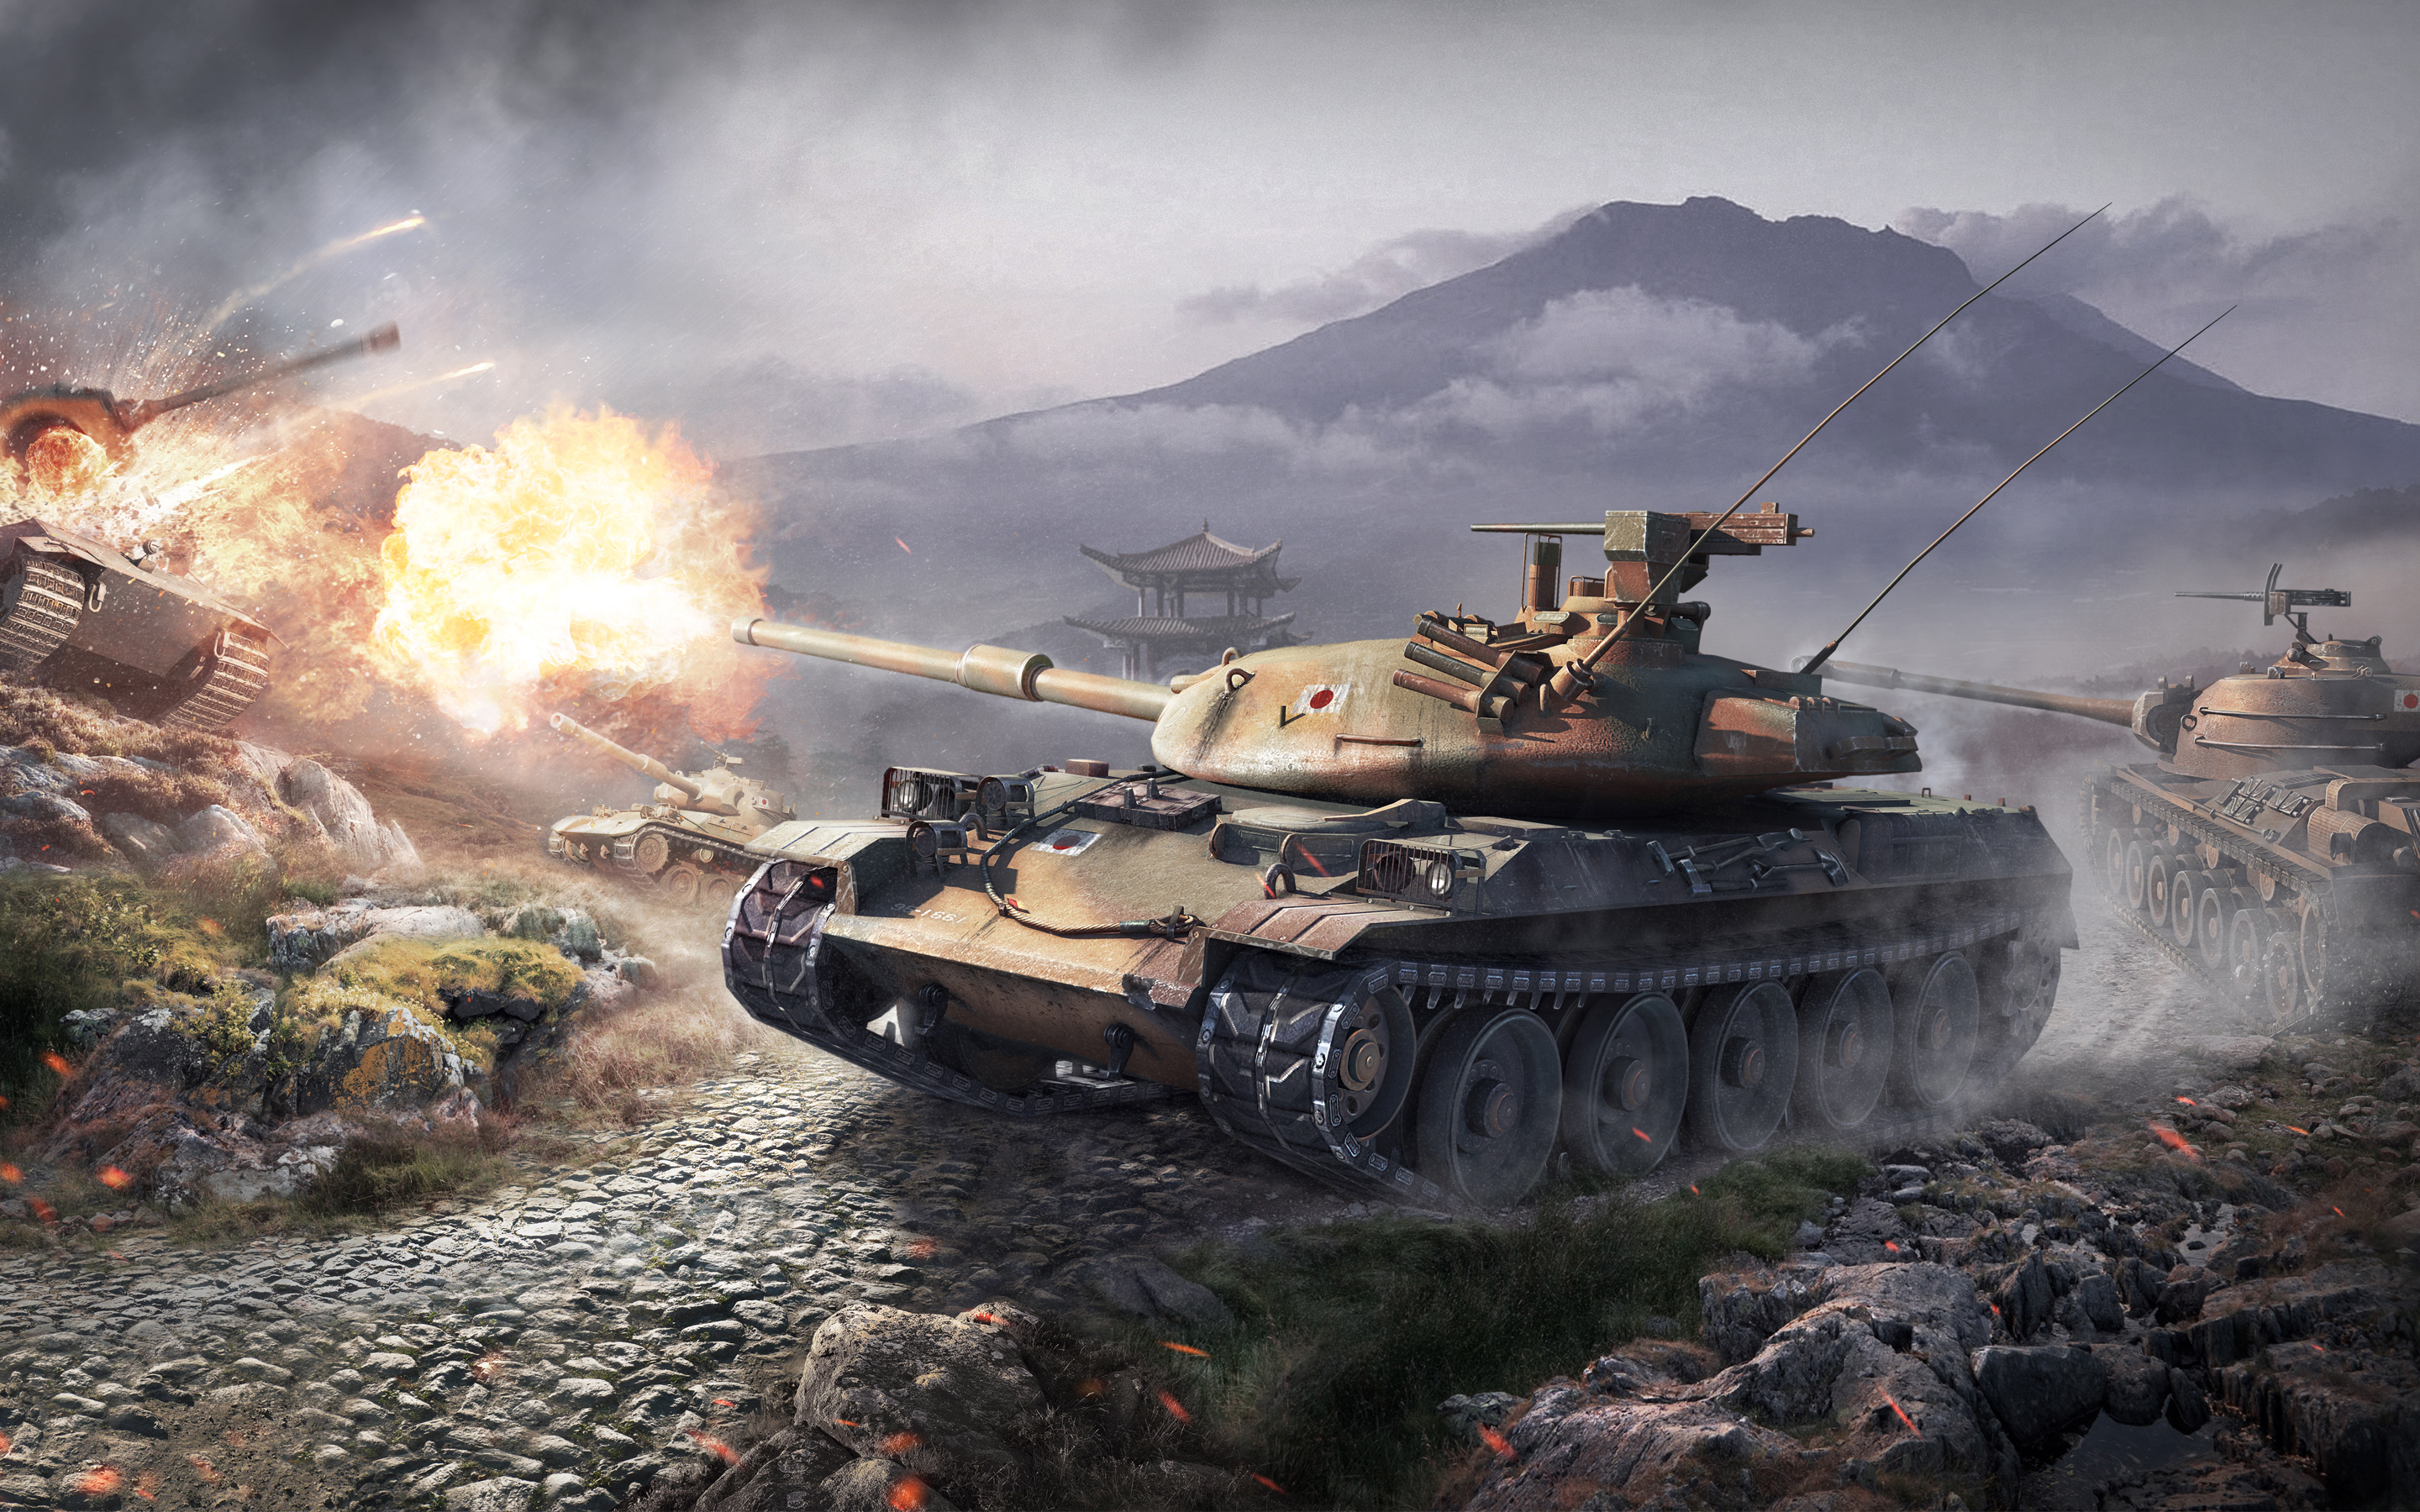 World of Tanks Japanese Tanks 1154.22 Kb